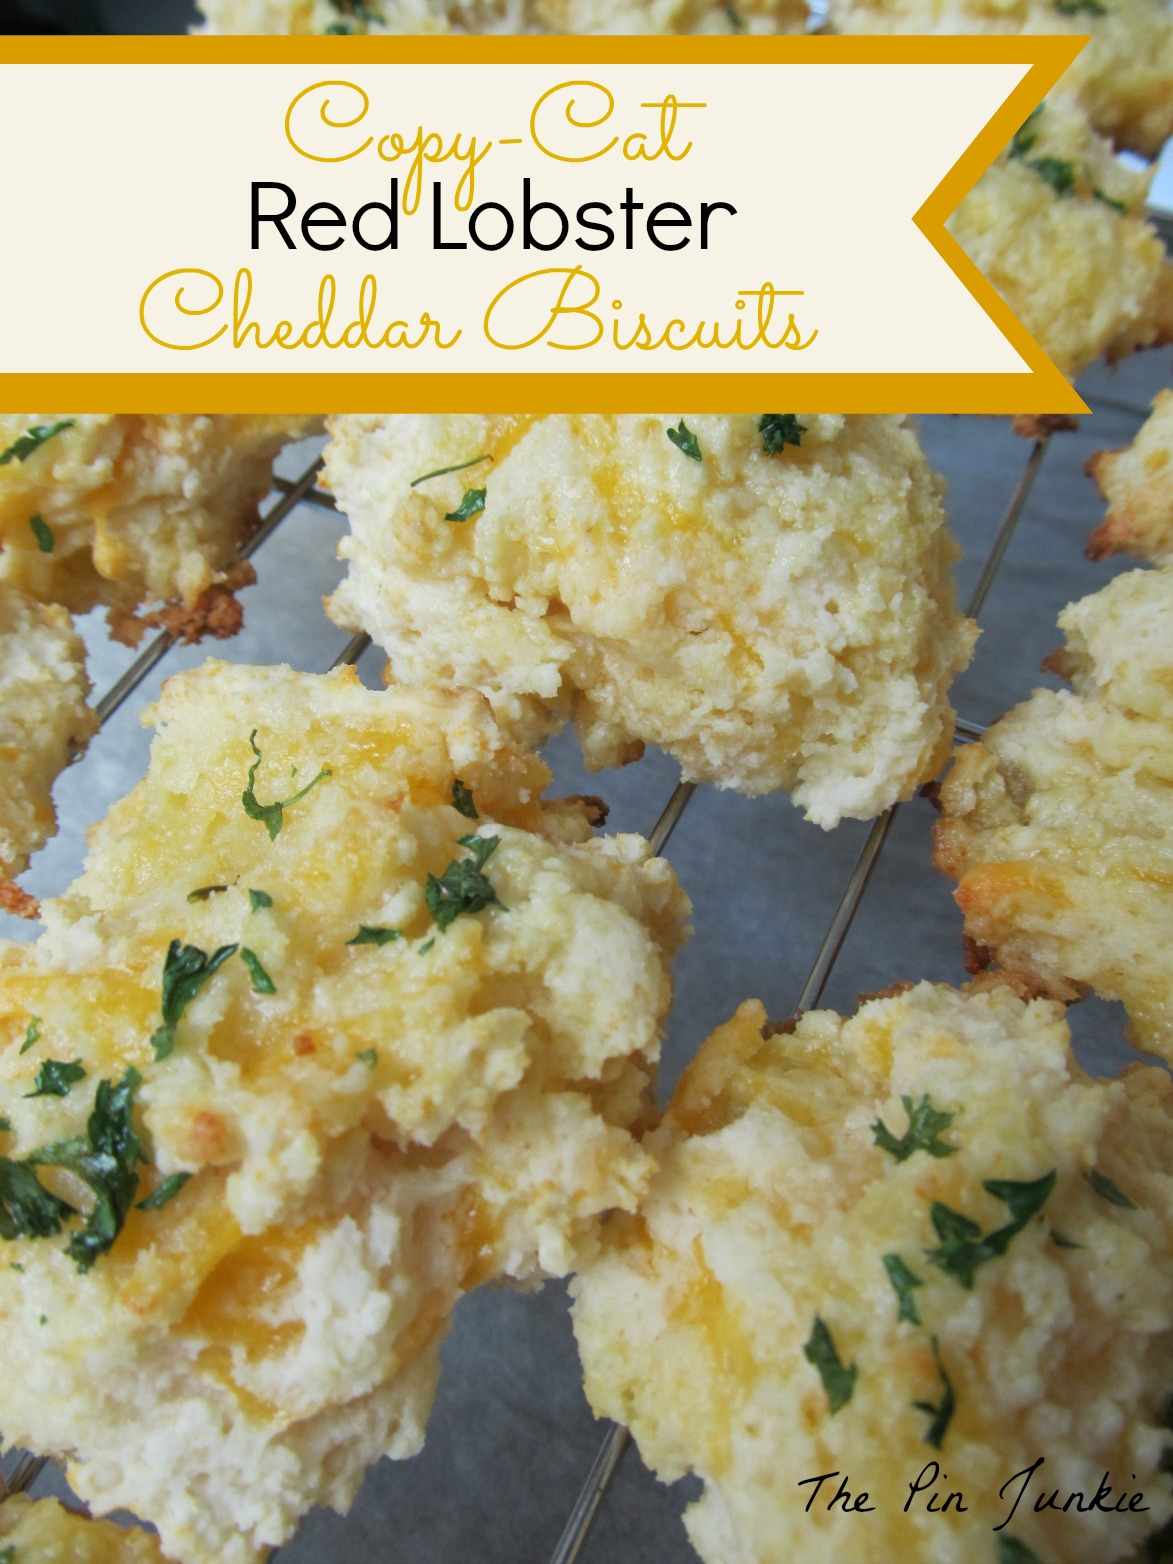 red lobster cheddar biscuits recipe